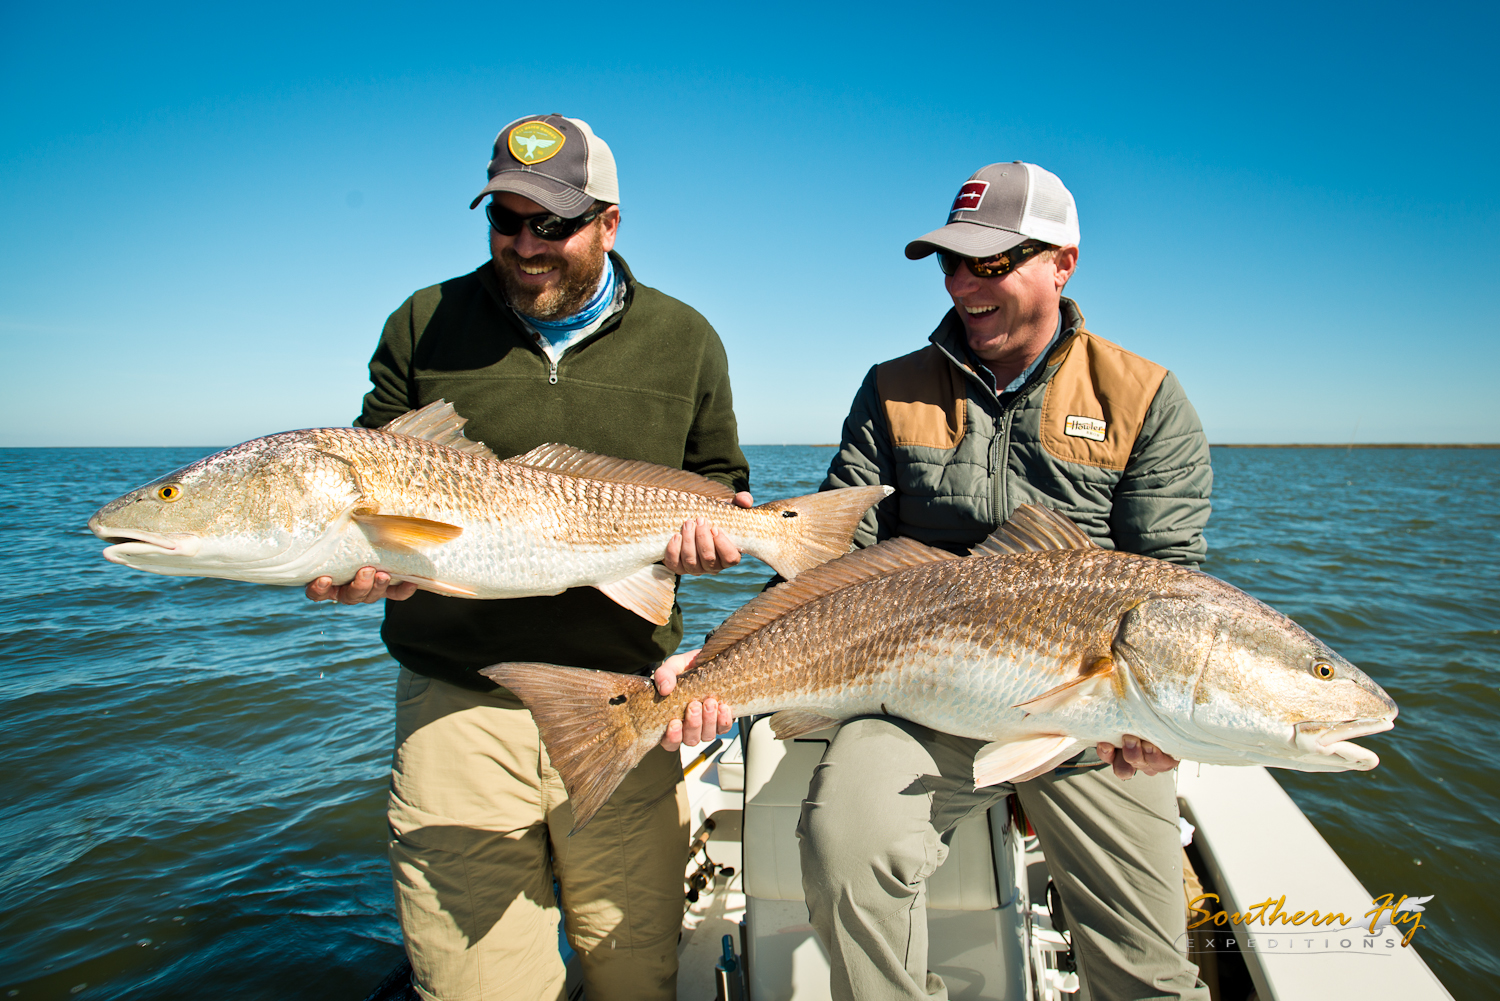 Southern Fly Expeditions fly fishing guys trip ideas to new orleans